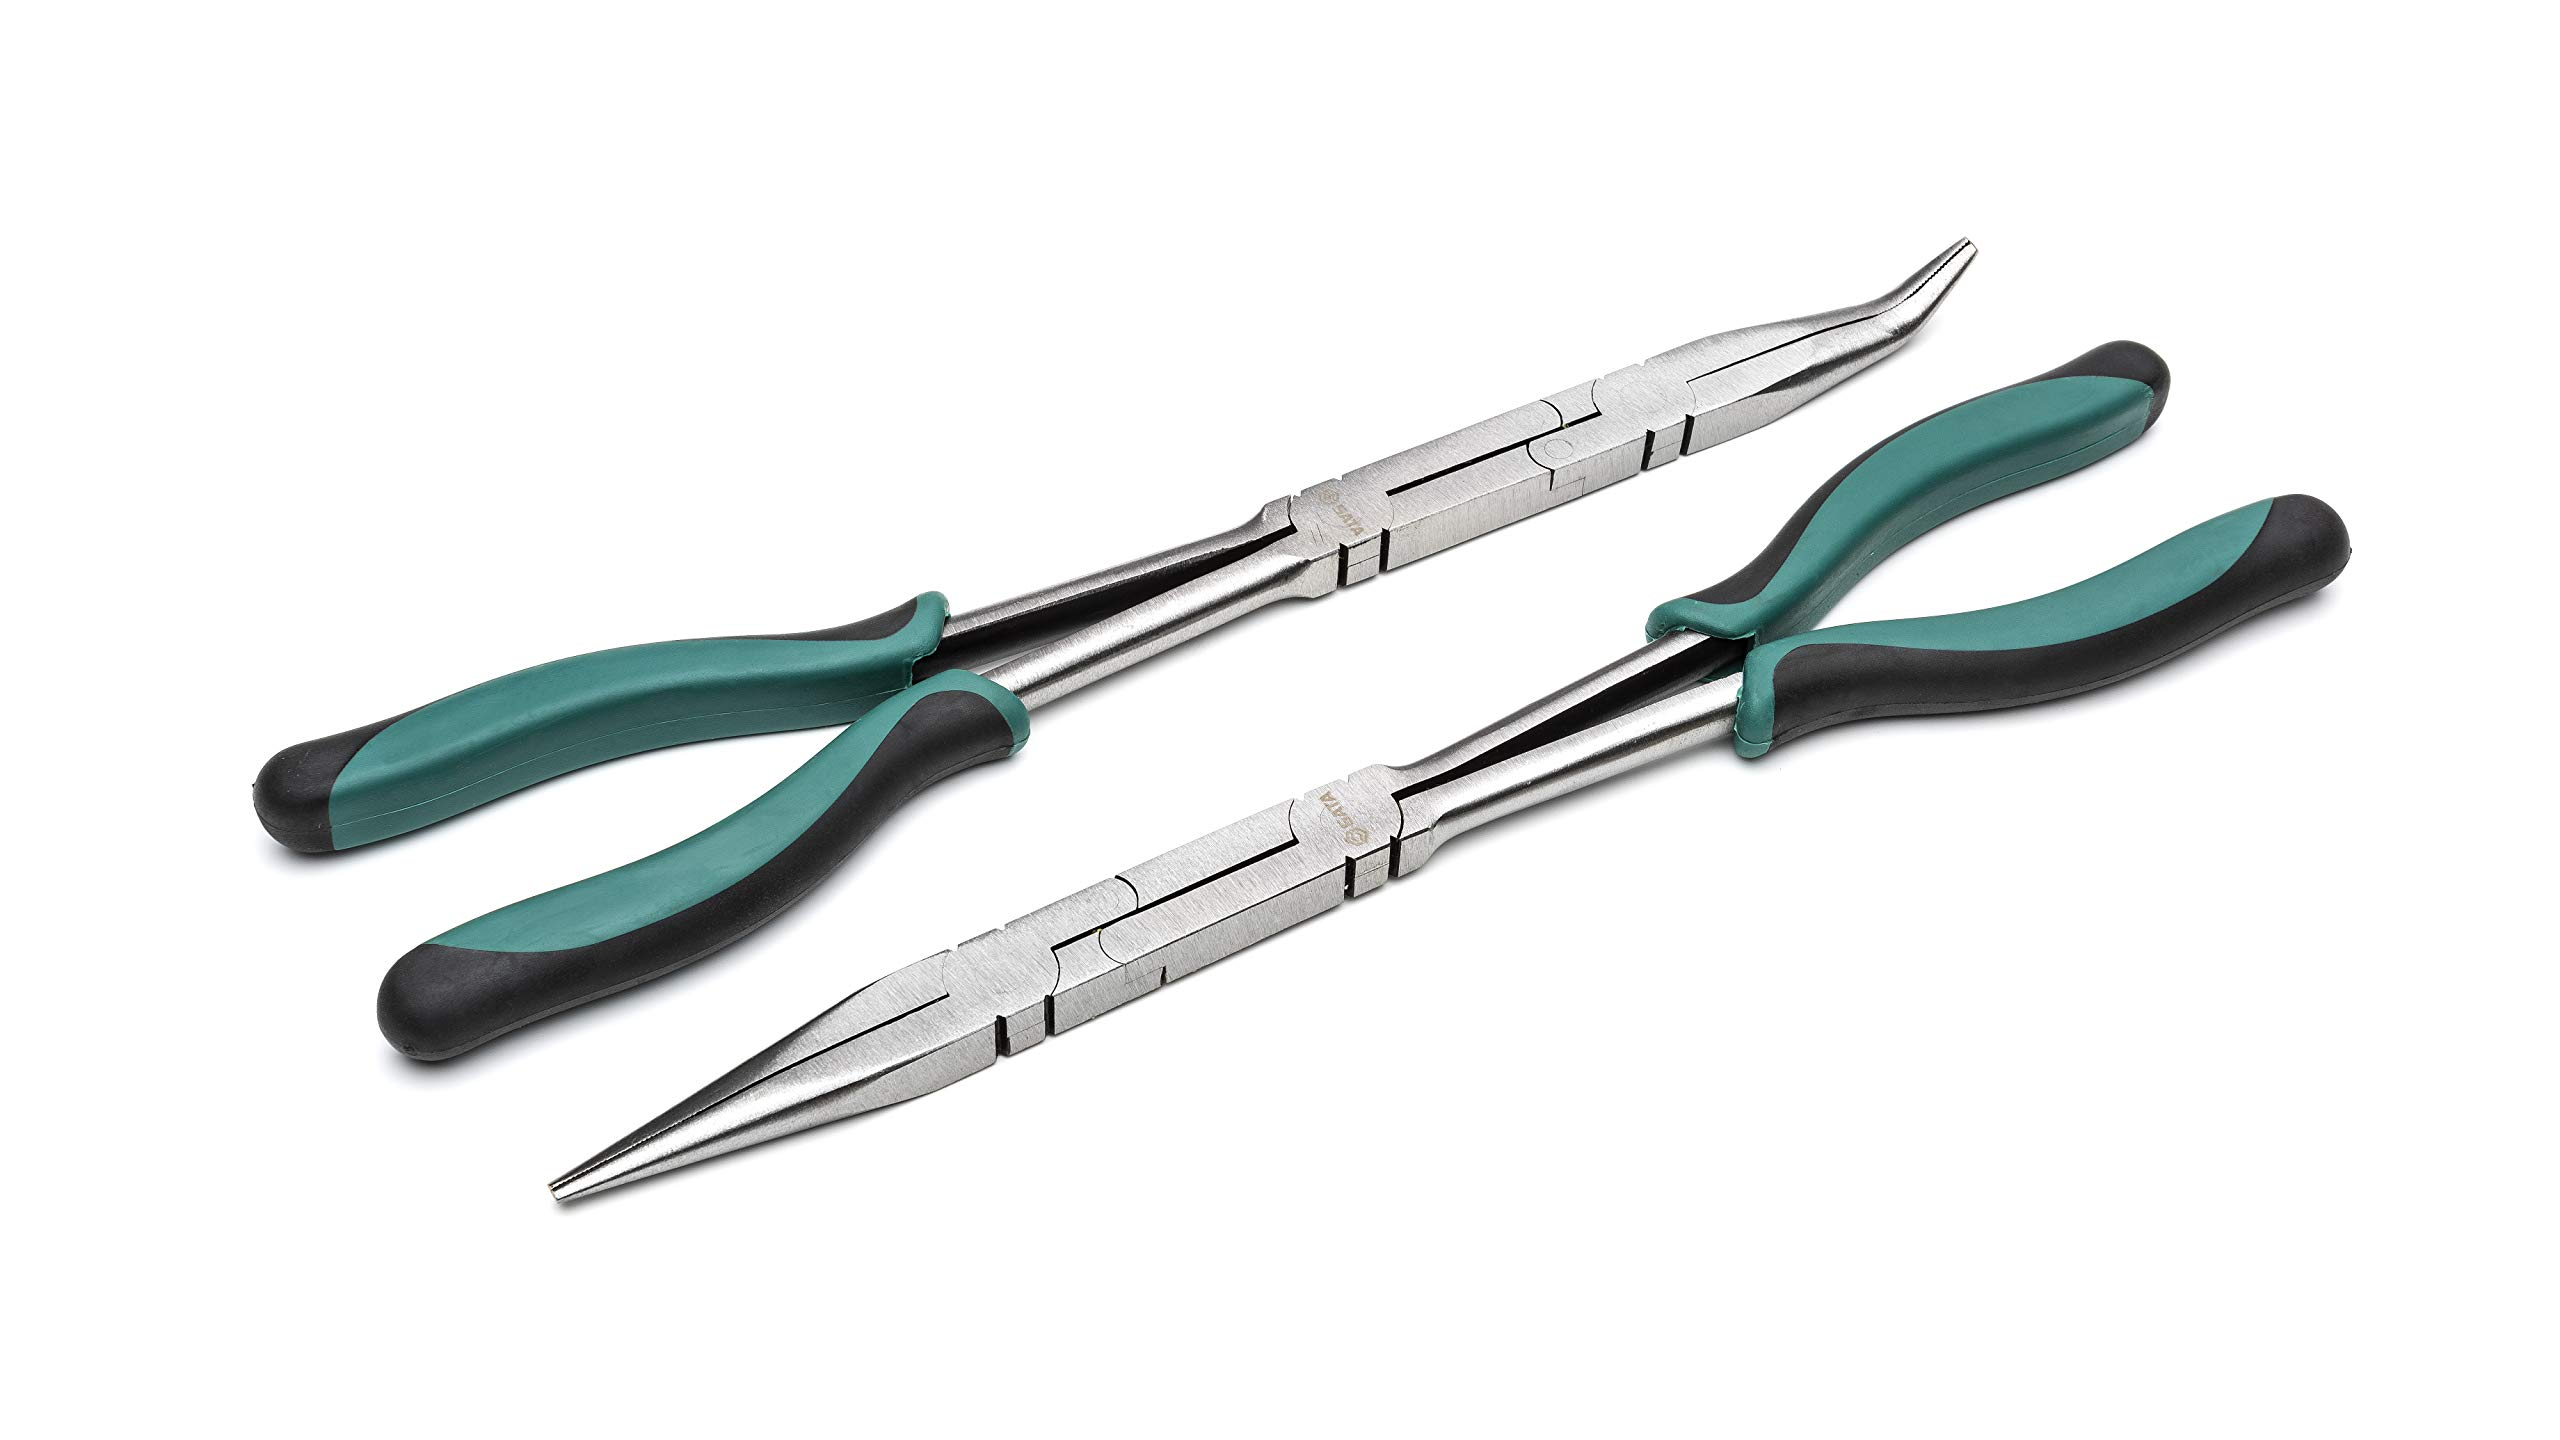 SATA 2Piece Double x-Pliers Set, Straight Body & 45° Tip, with Green Handles & A Long-Nose Design - ST70003U by SATA